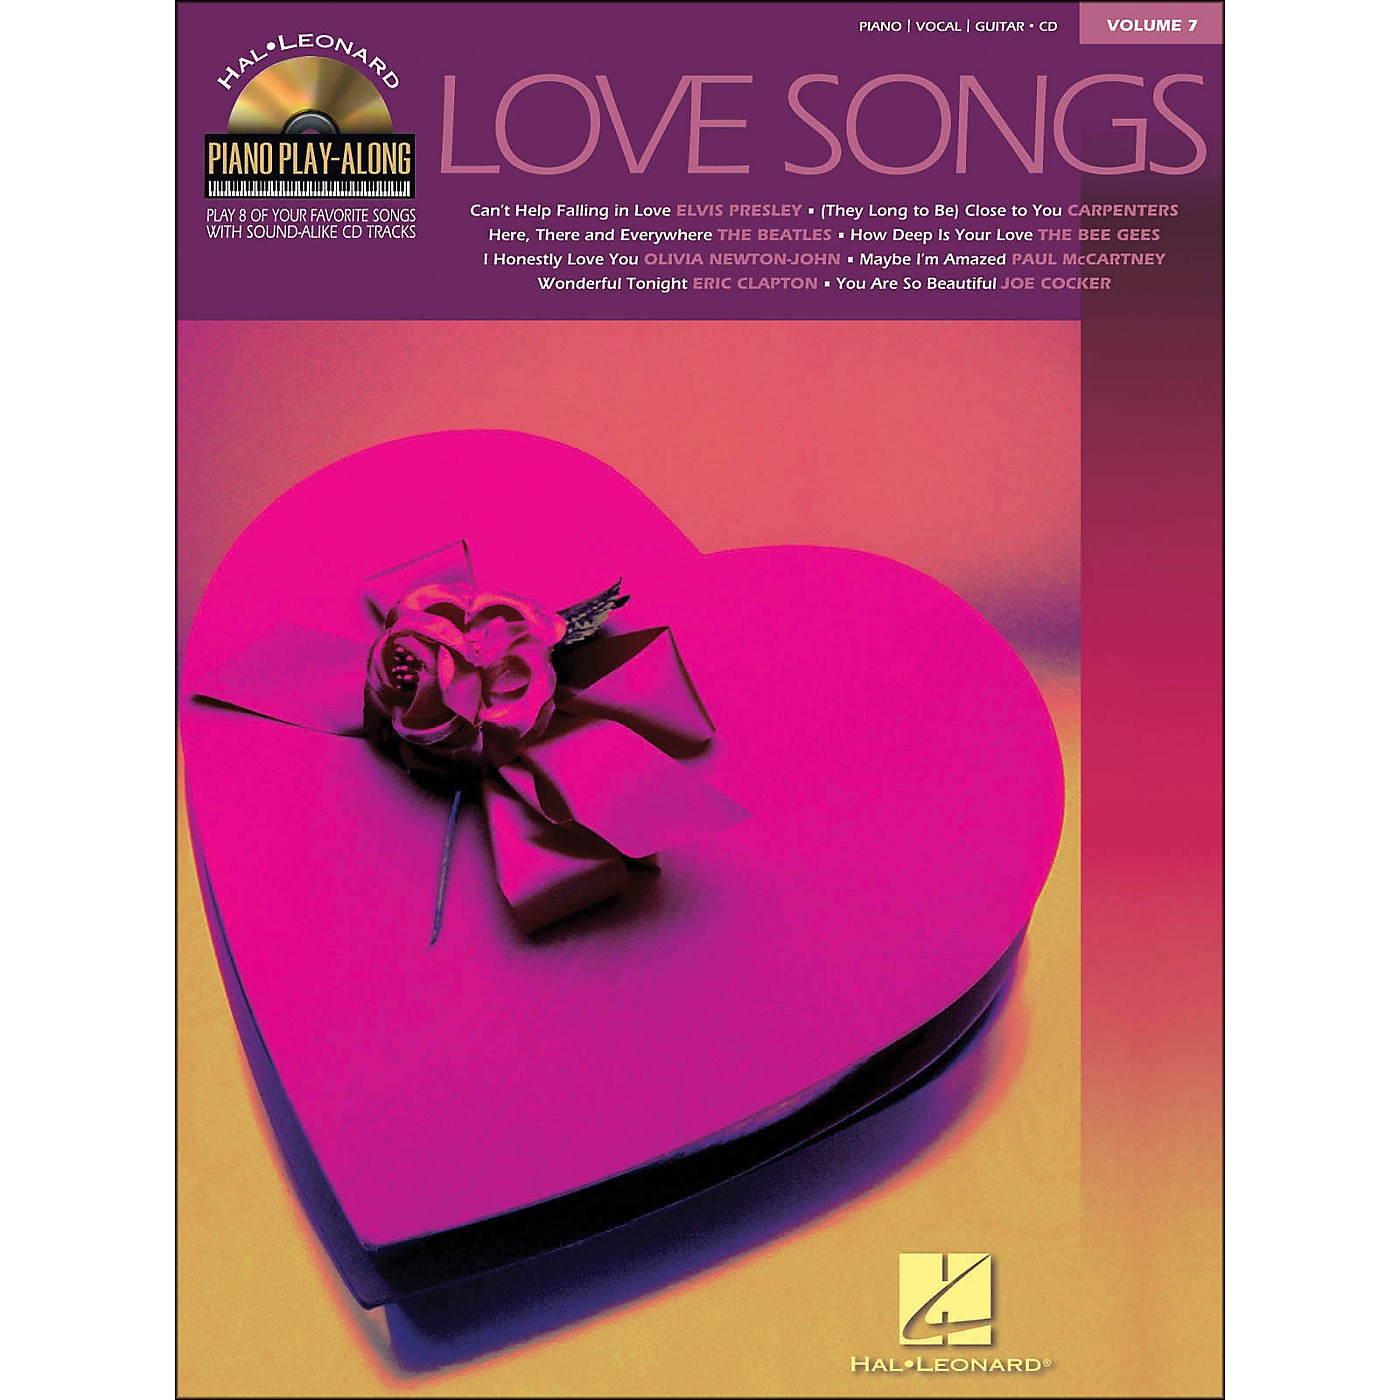 Hal Leonard Love Songs Piano Play-Along Volume 7 Book/CD arranged for piano, vocal, and guitar (P/V/G) thumbnail